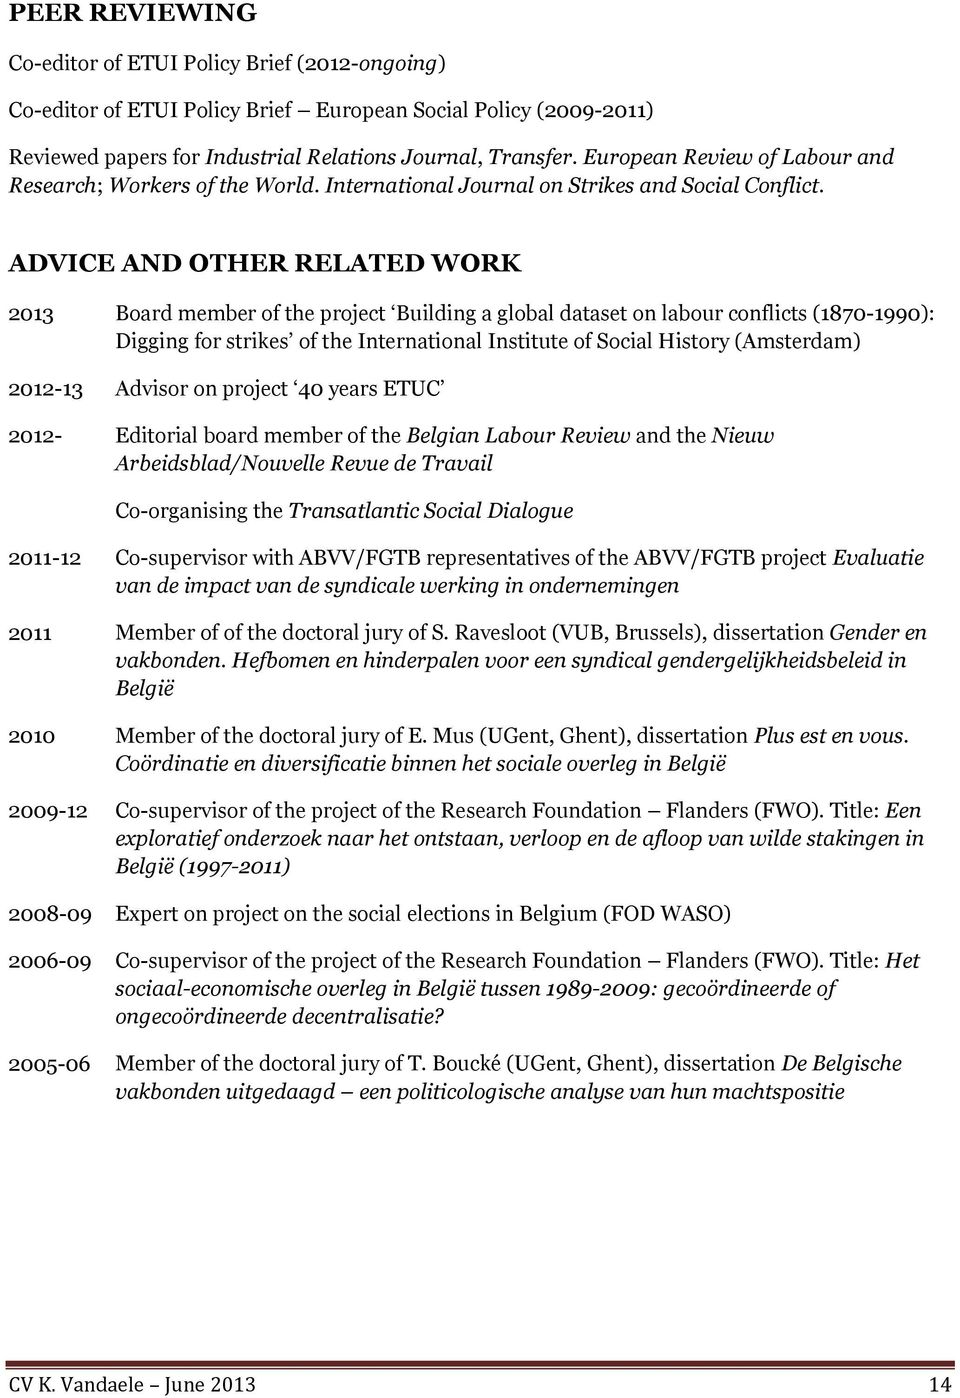 ADVICE AND OTHER RELATED WORK 2013 Board member of the project Building a global dataset on labour conflicts (1870-1990): Digging for strikes of the International Institute of Social History